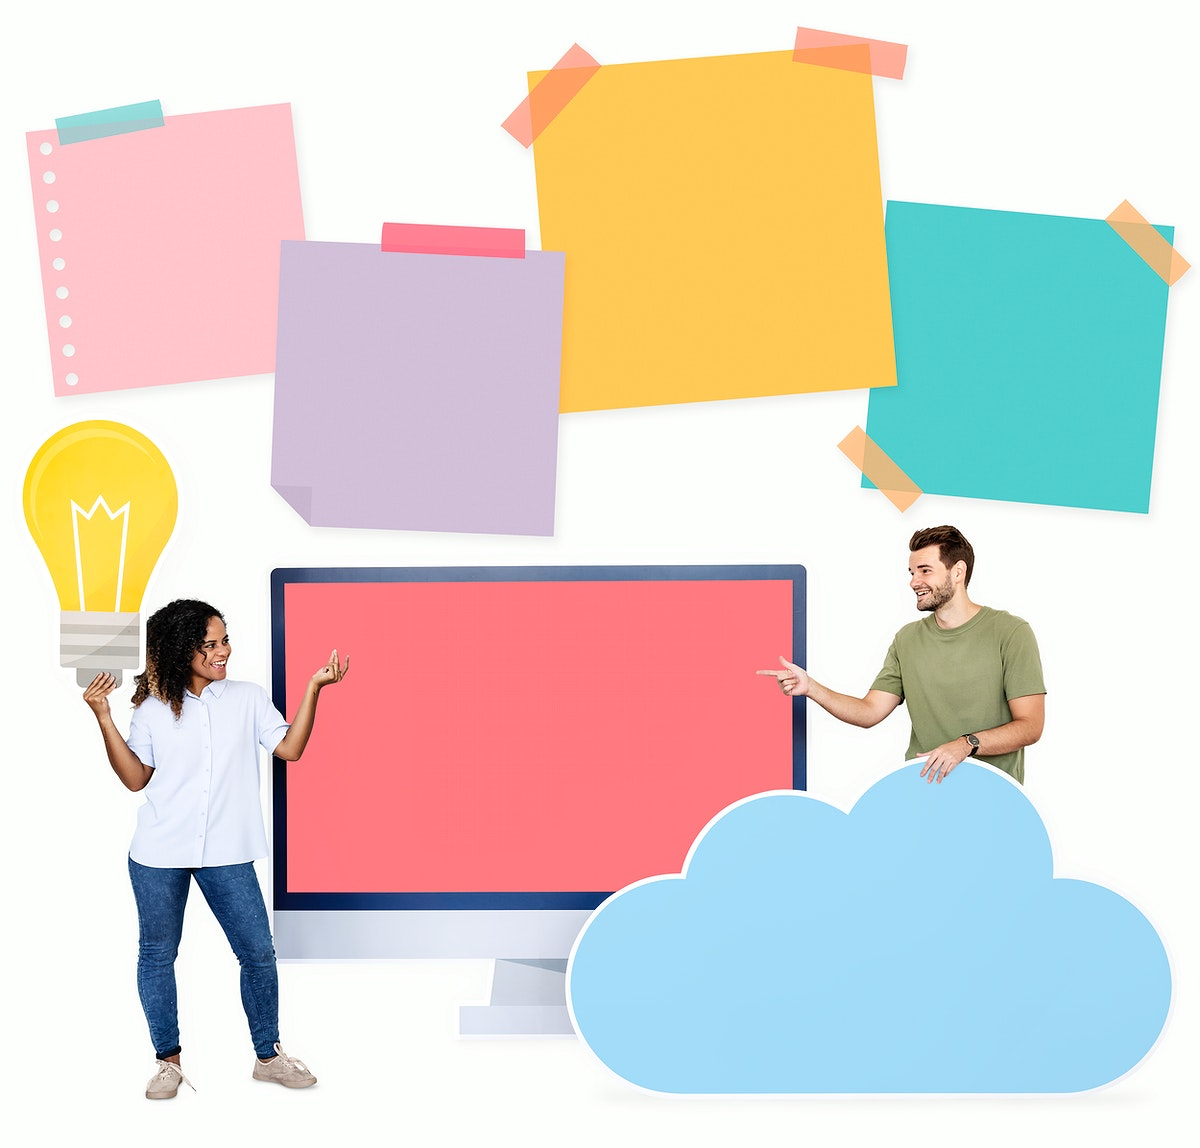 People holding ideas and cloud computing icons